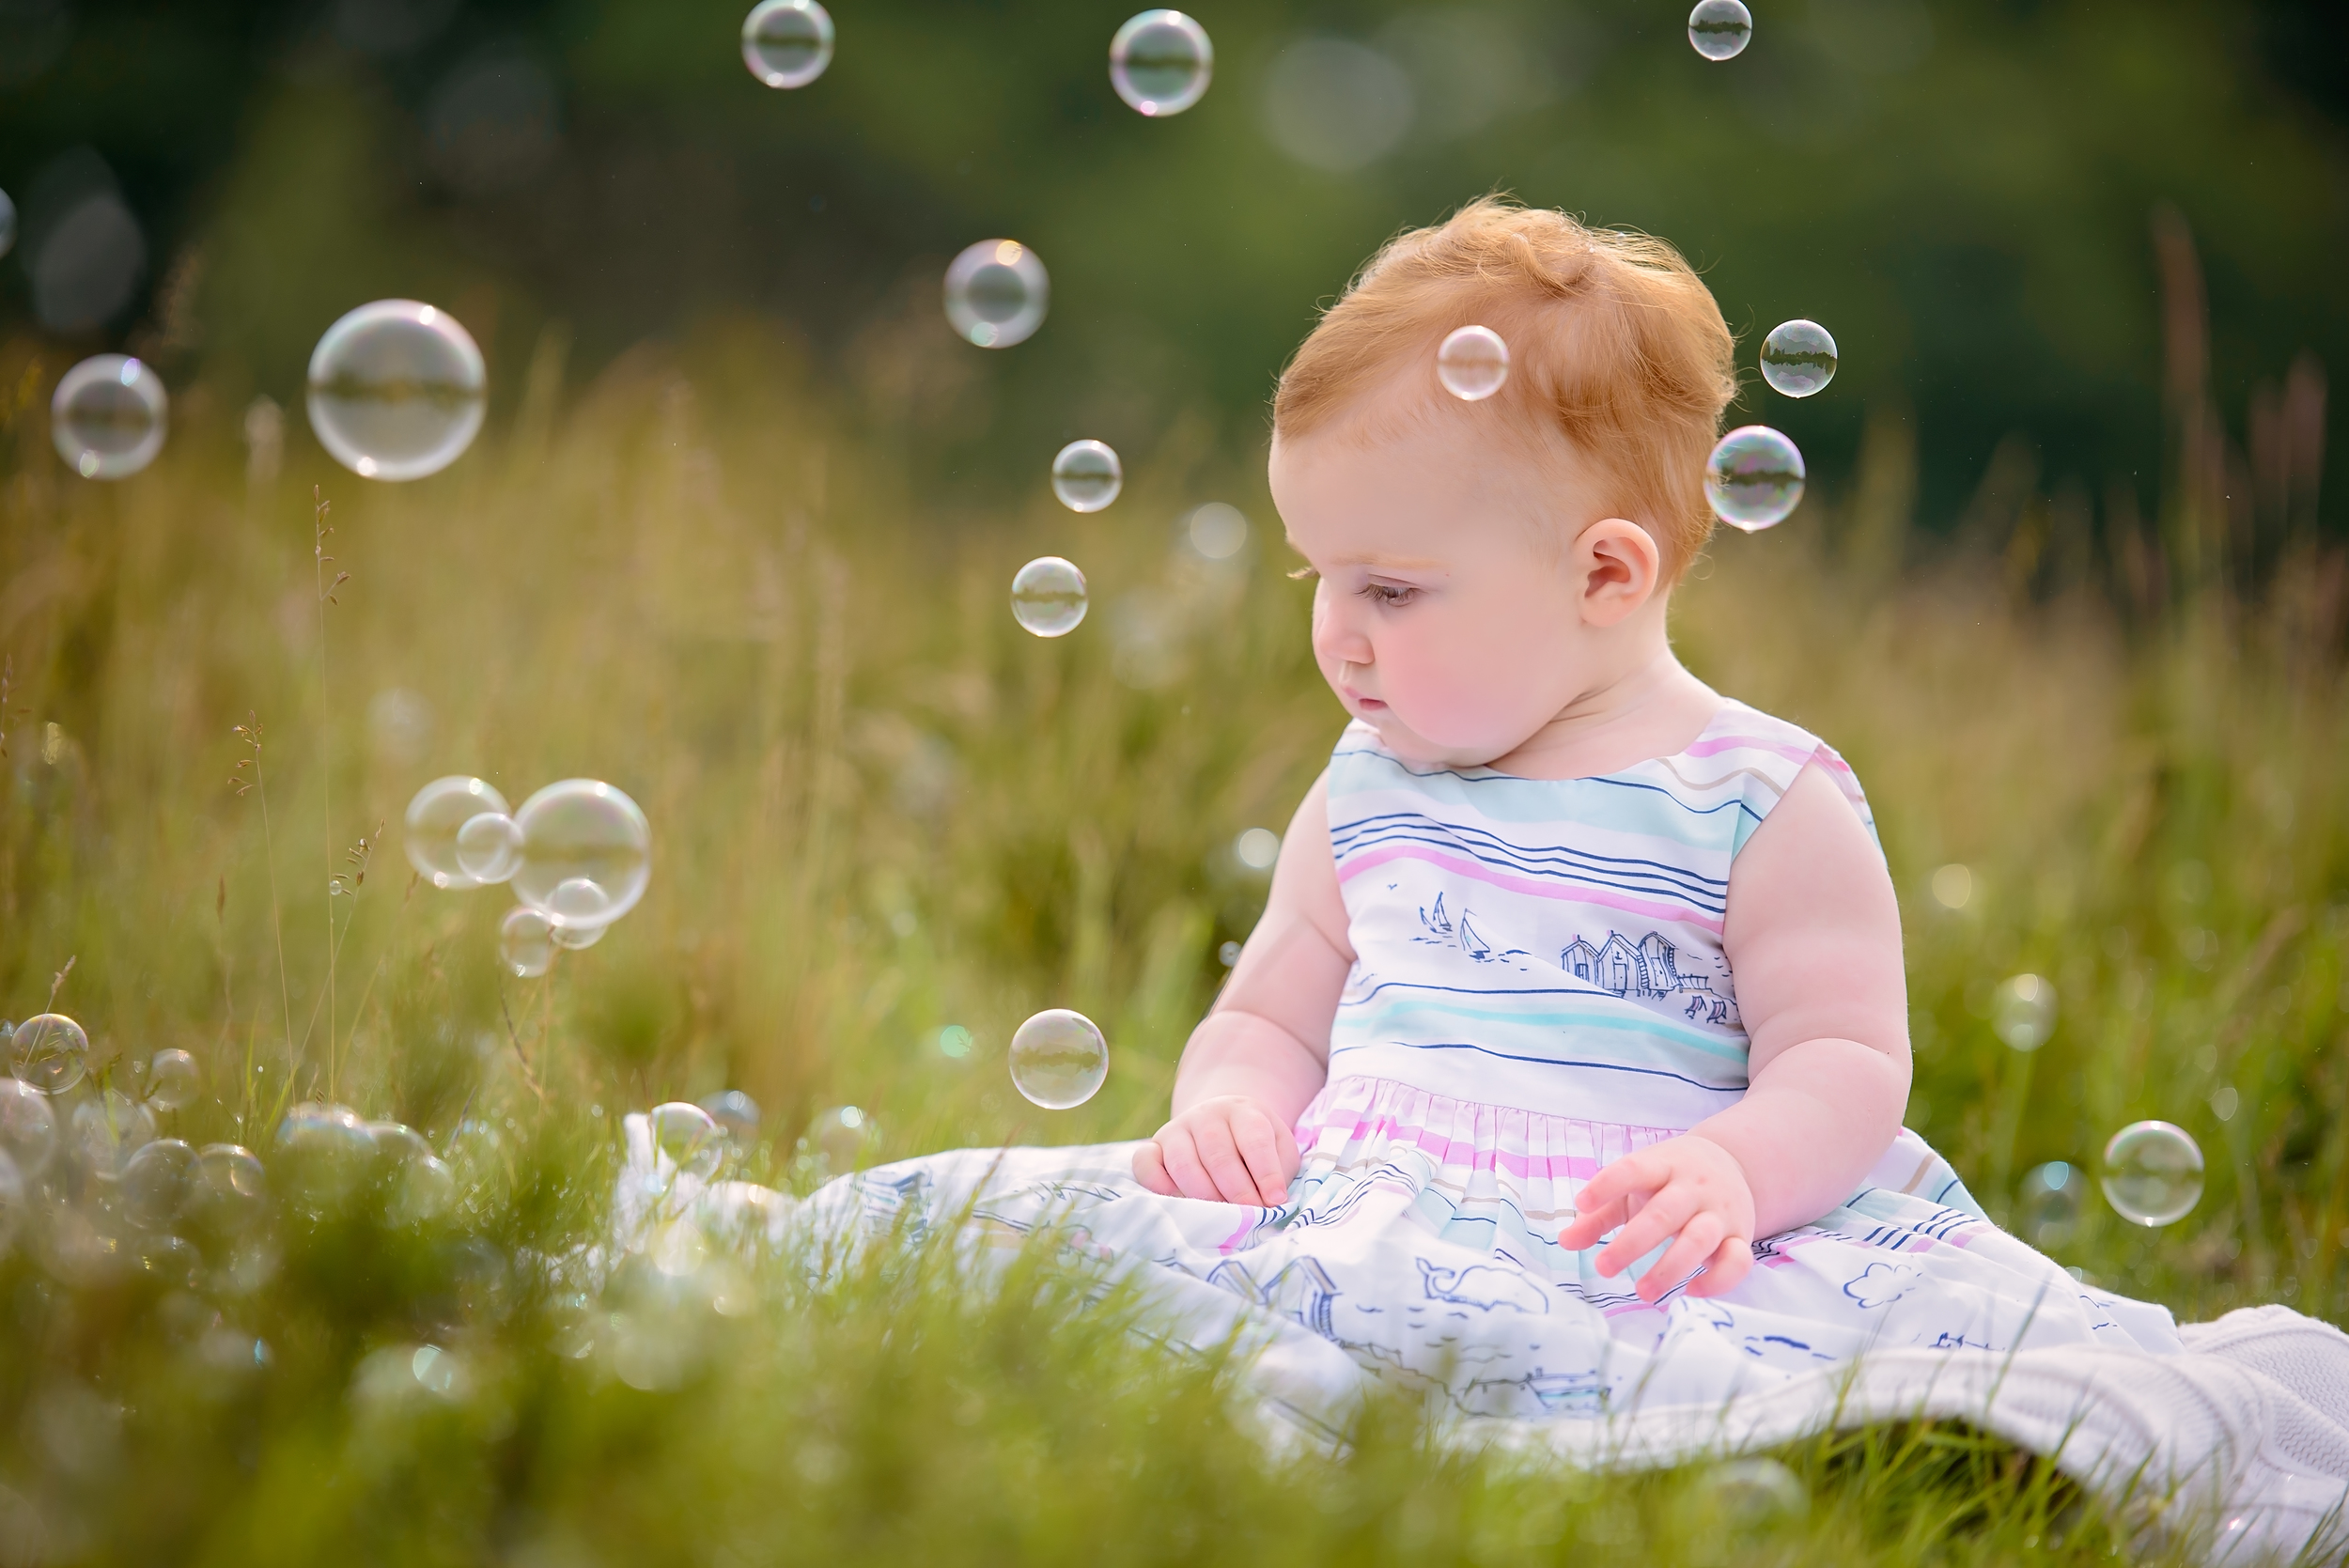 Toddler portrait photography in South West London